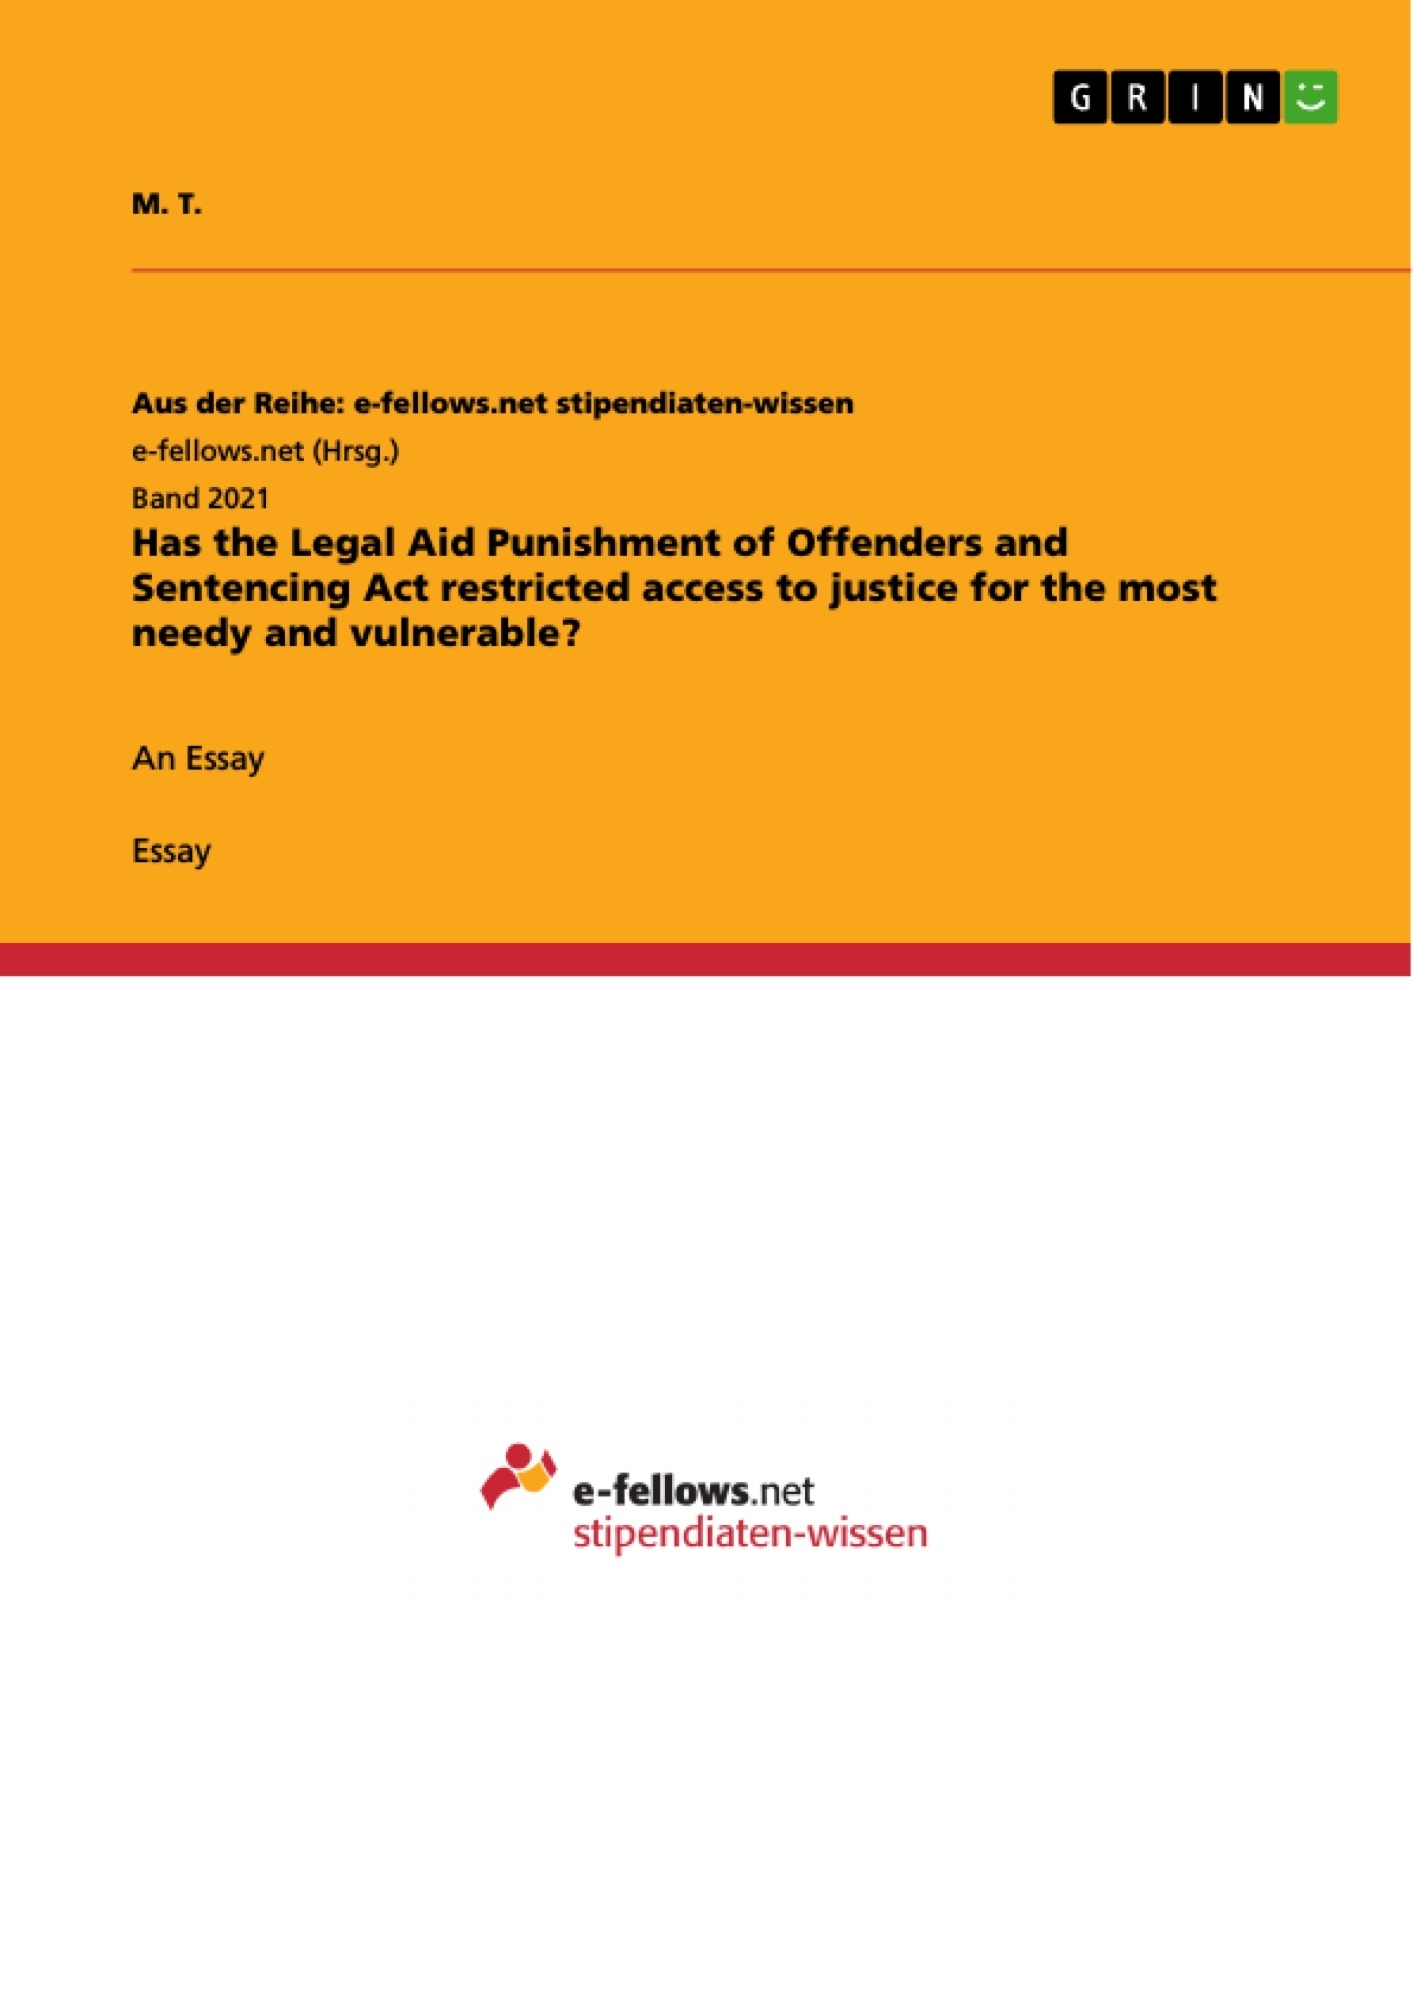 Title: Has the Legal Aid Punishment of Offenders and Sentencing Act restricted access to justice for the most needy and vulnerable?